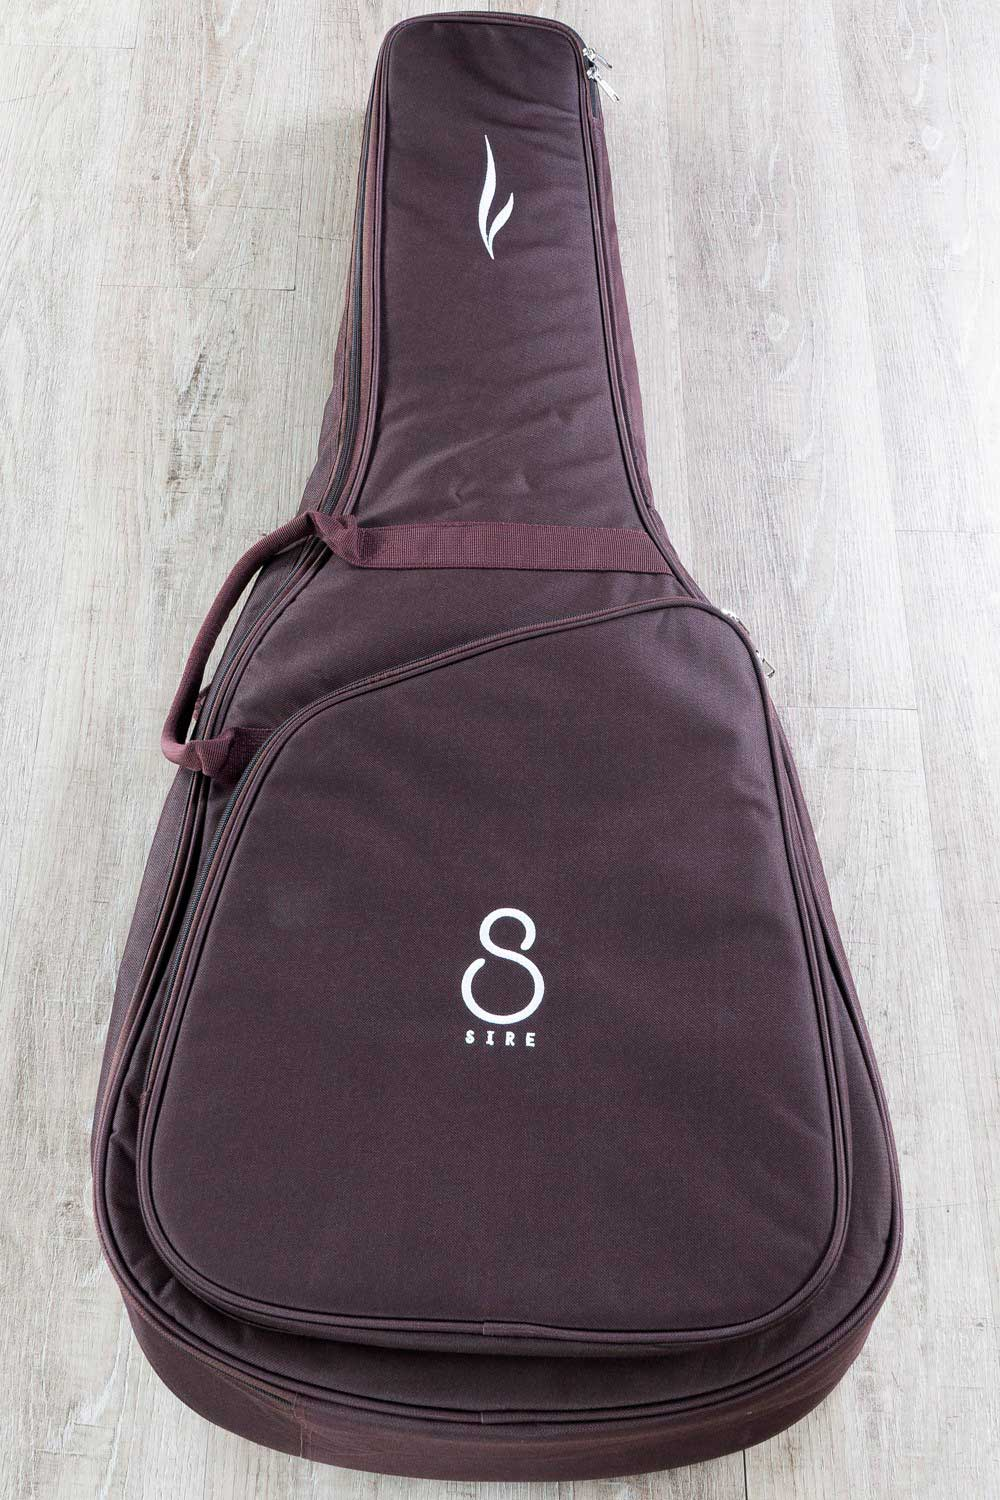 SIRE BY MARCUS MILLER GIGBAG - ACOUSTIC GUITAR PREMIUM